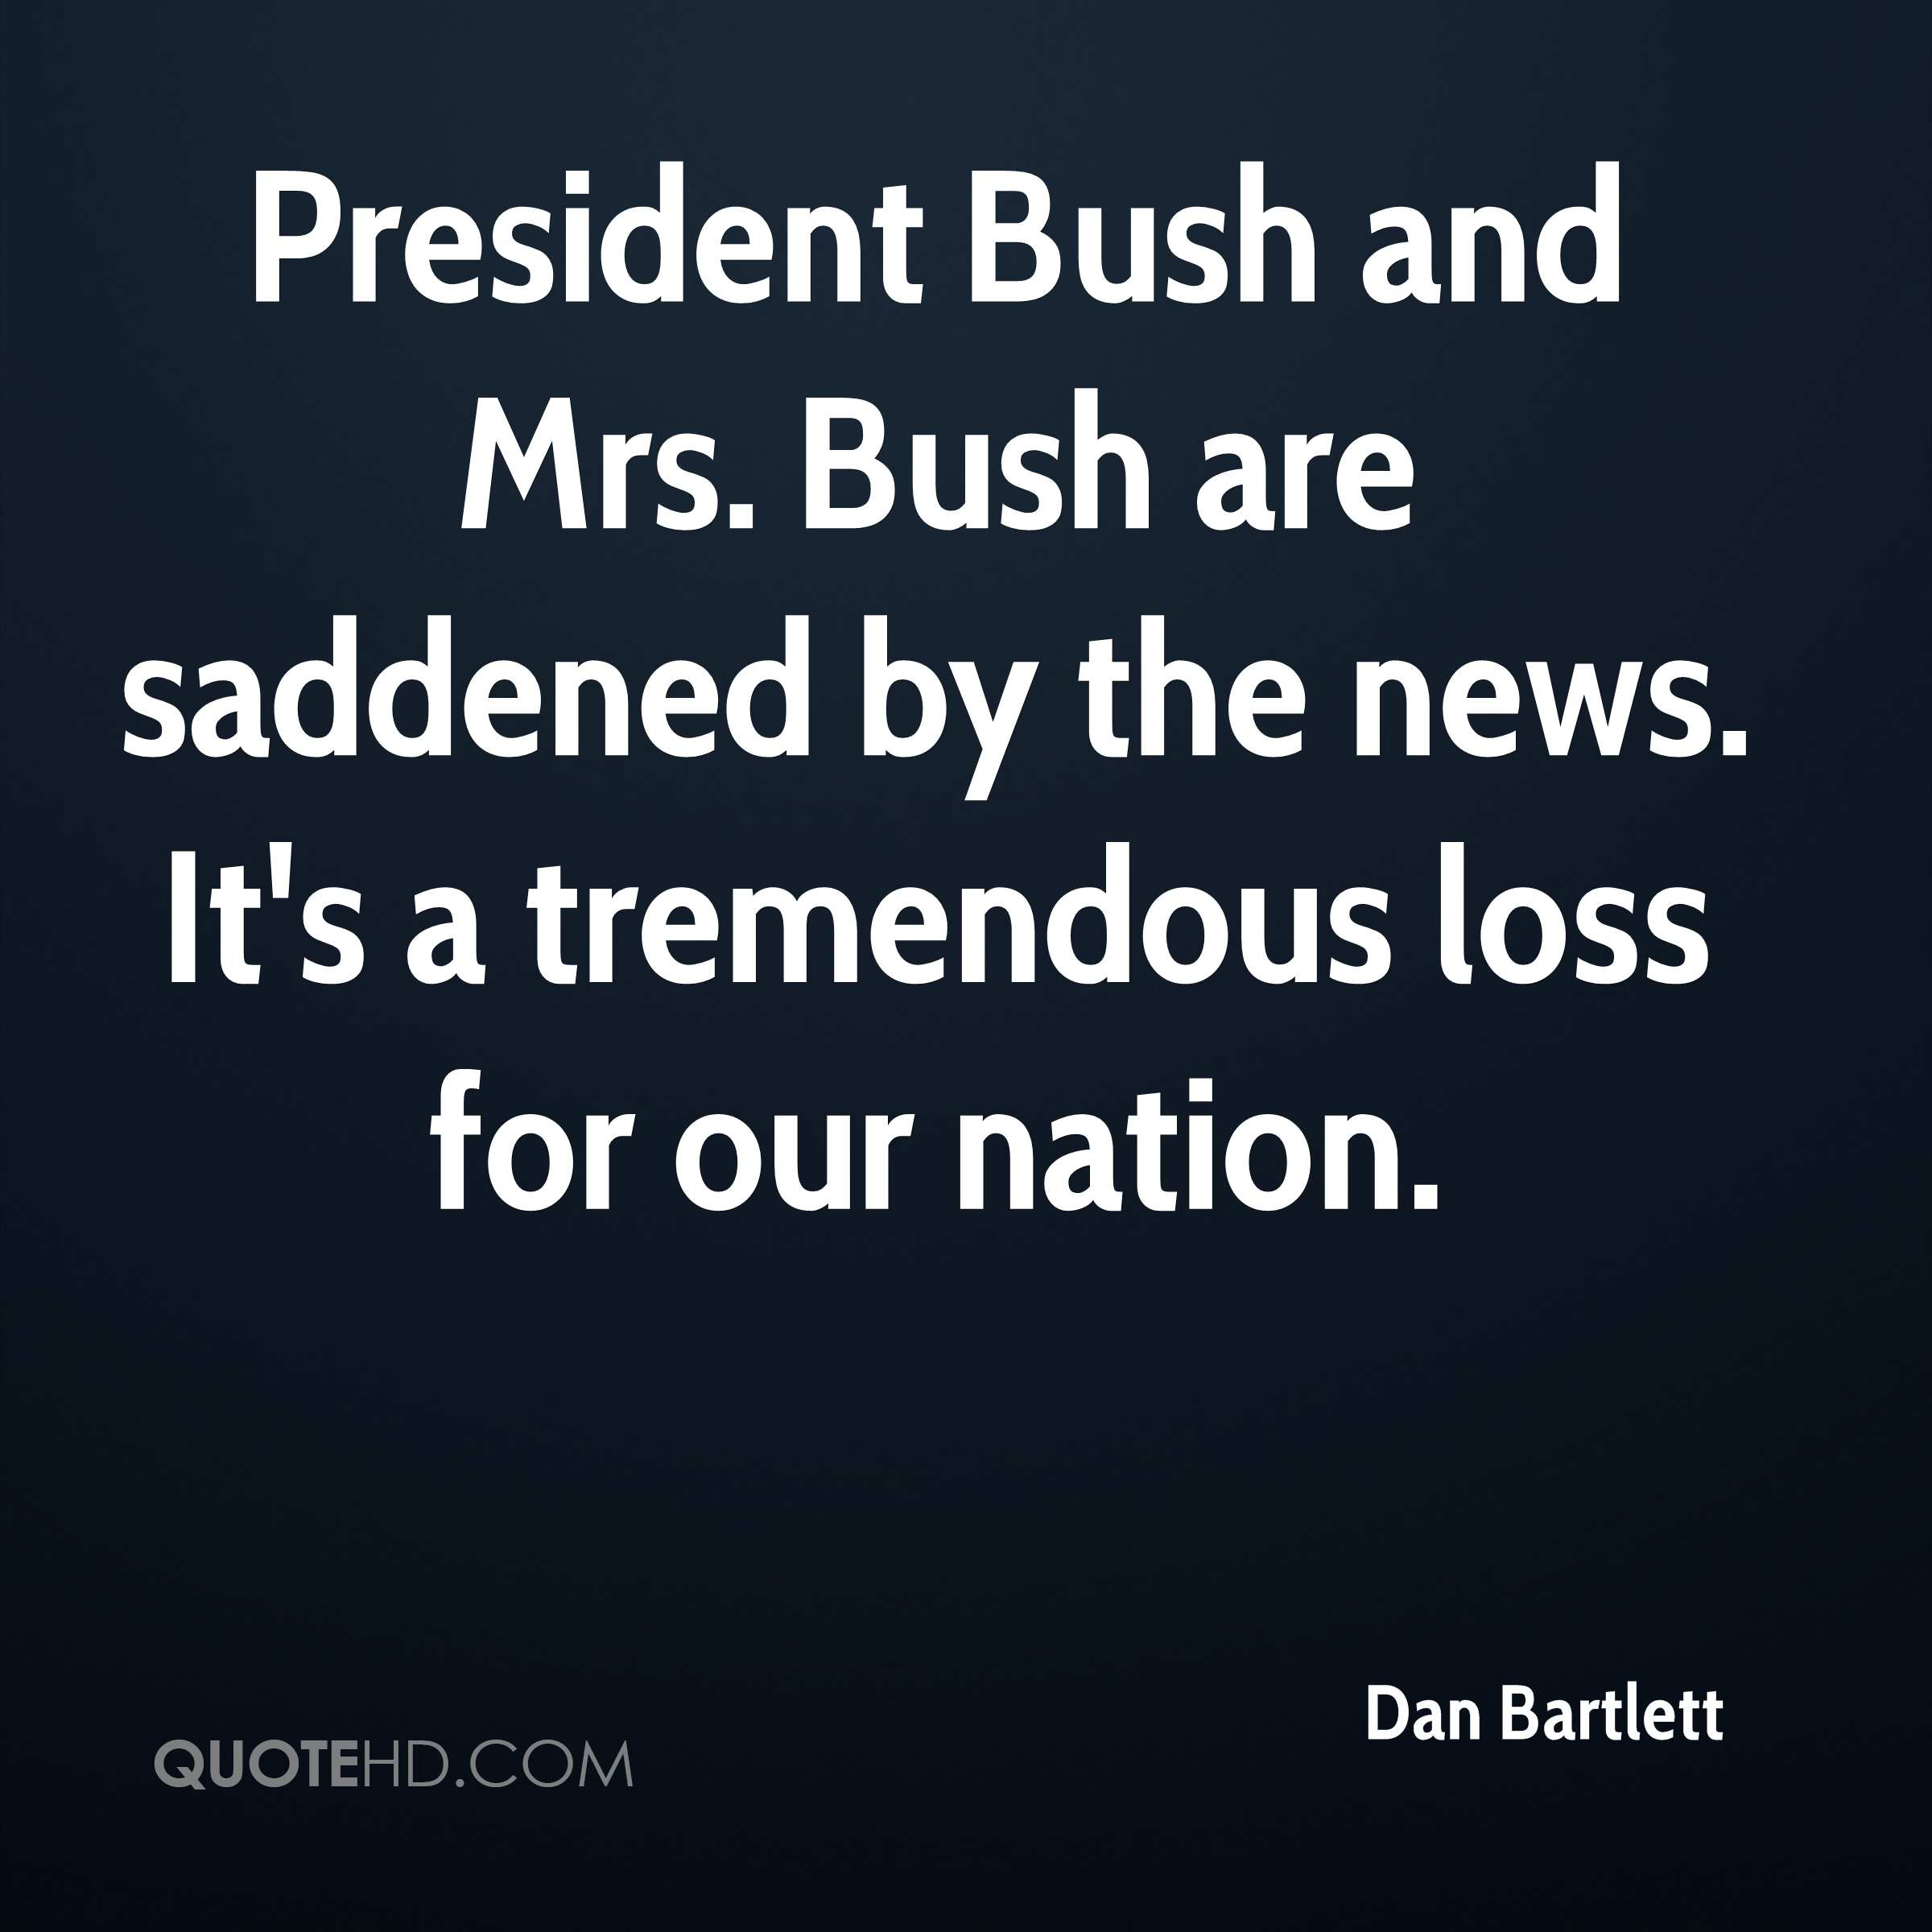 President Bush and Mrs. Bush are saddened by the news. It's a tremendous loss for our nation.